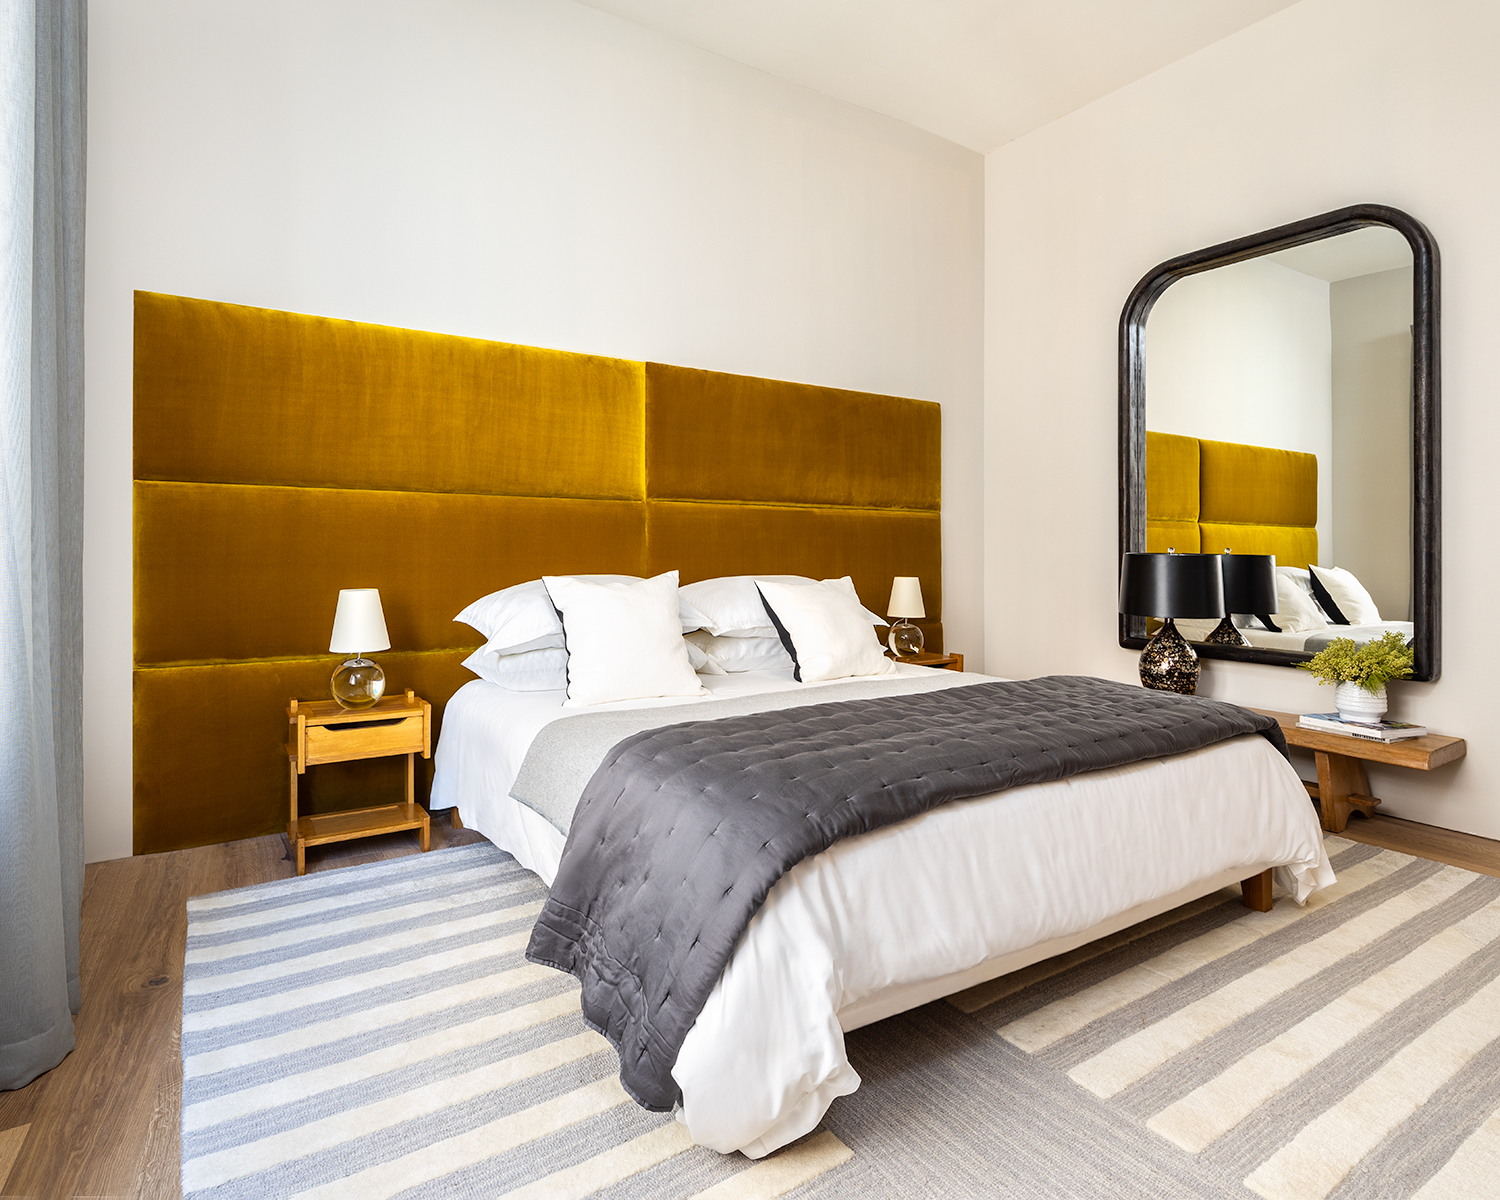 primary bedroom flooded with abundant natural light at 532 W 20 condos